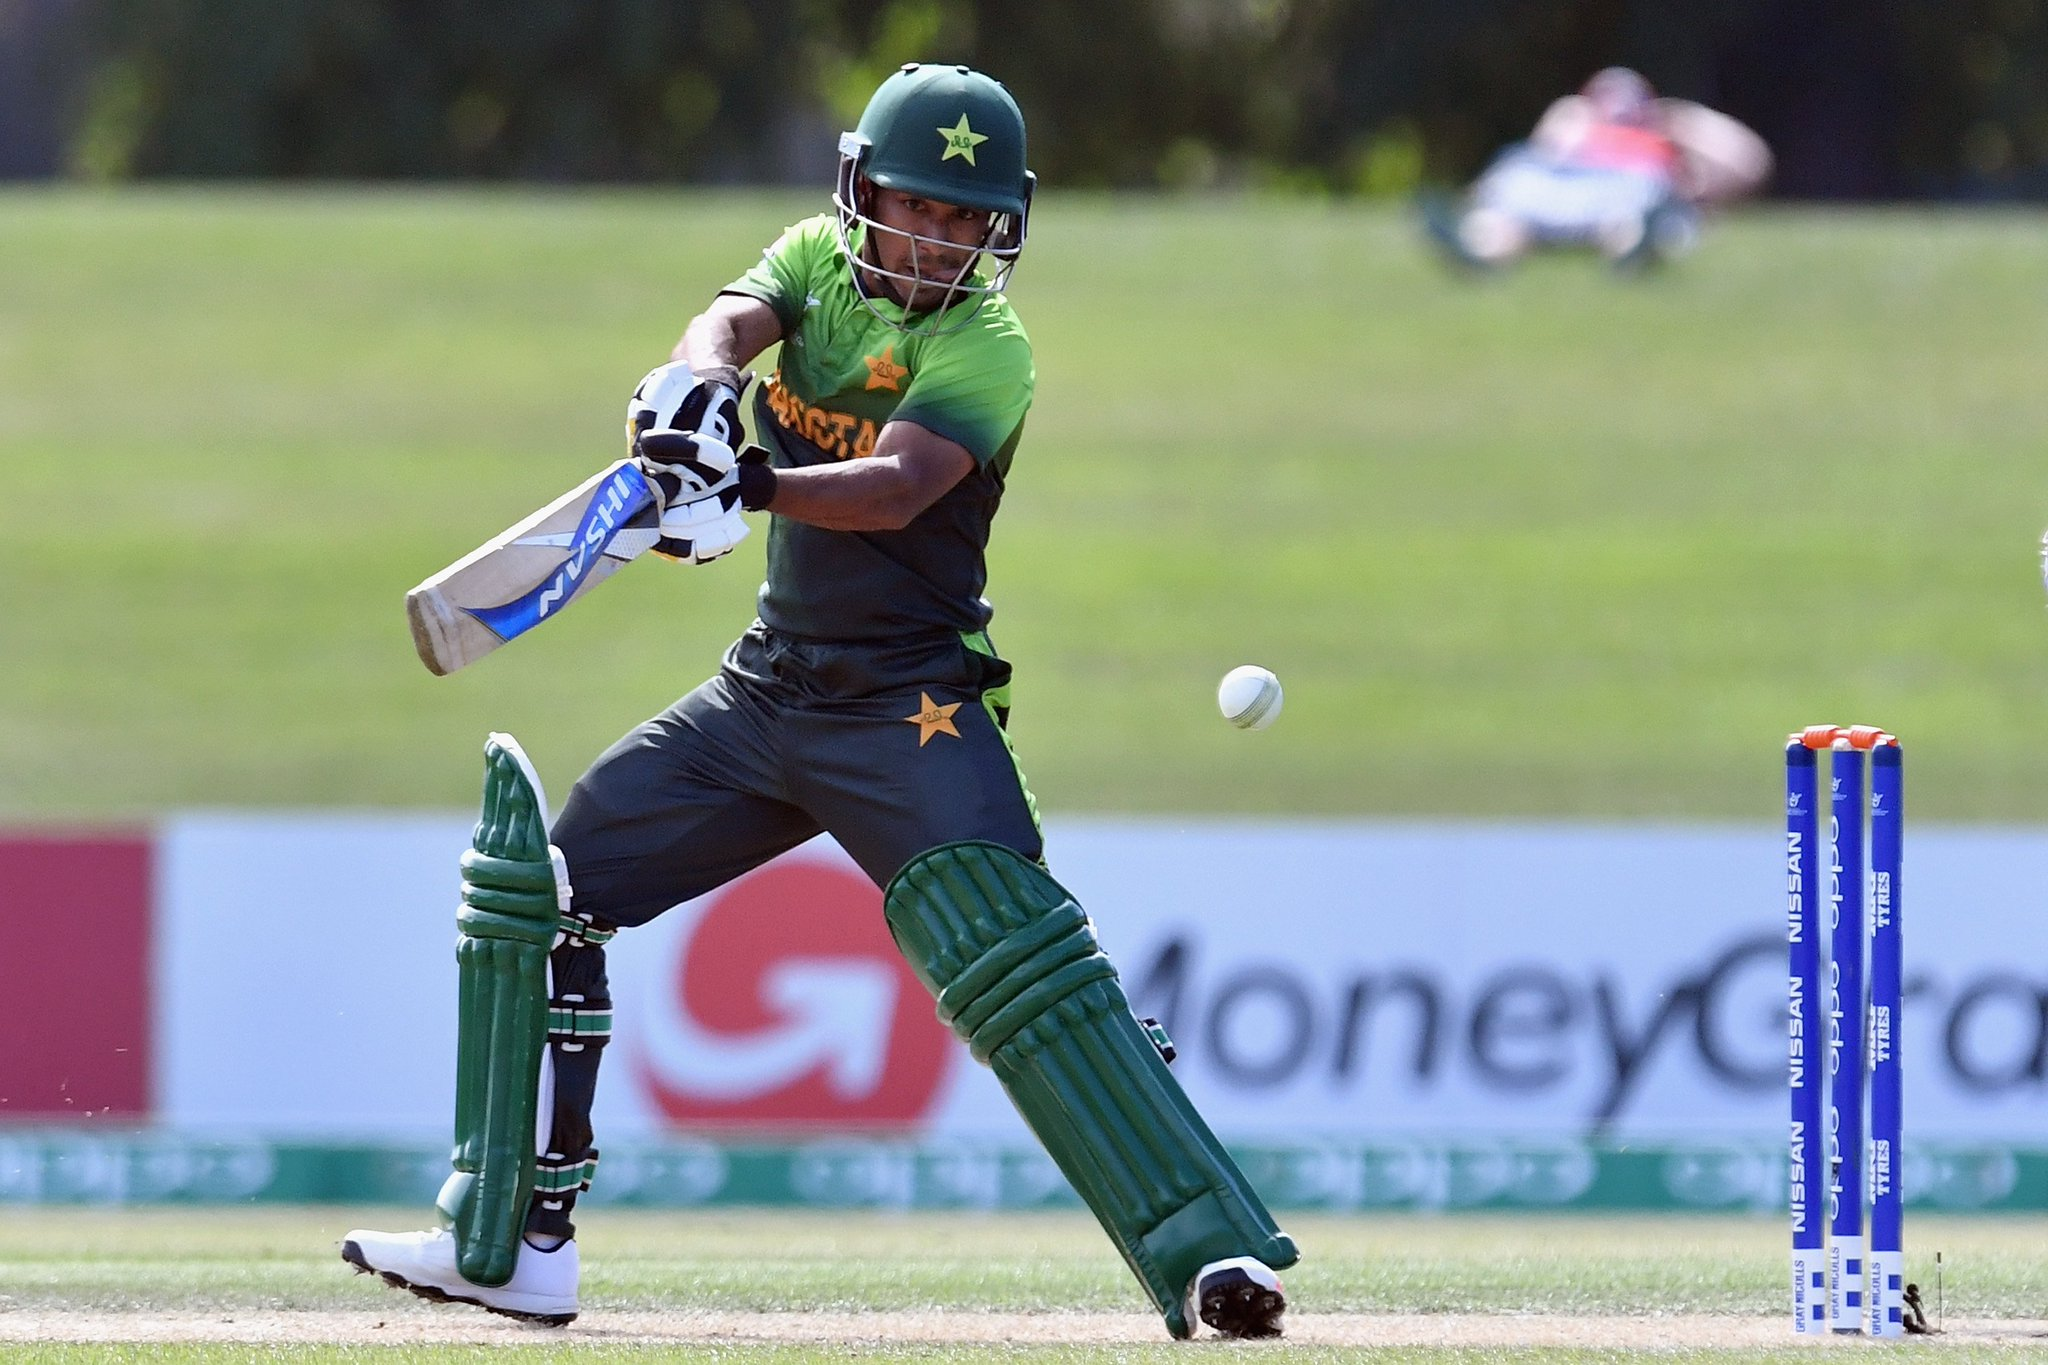 Pakistan U19s defeat South Africa U19s by 3 wickets and qualify for the semi-final of the ICC U19 Cricket World Cup